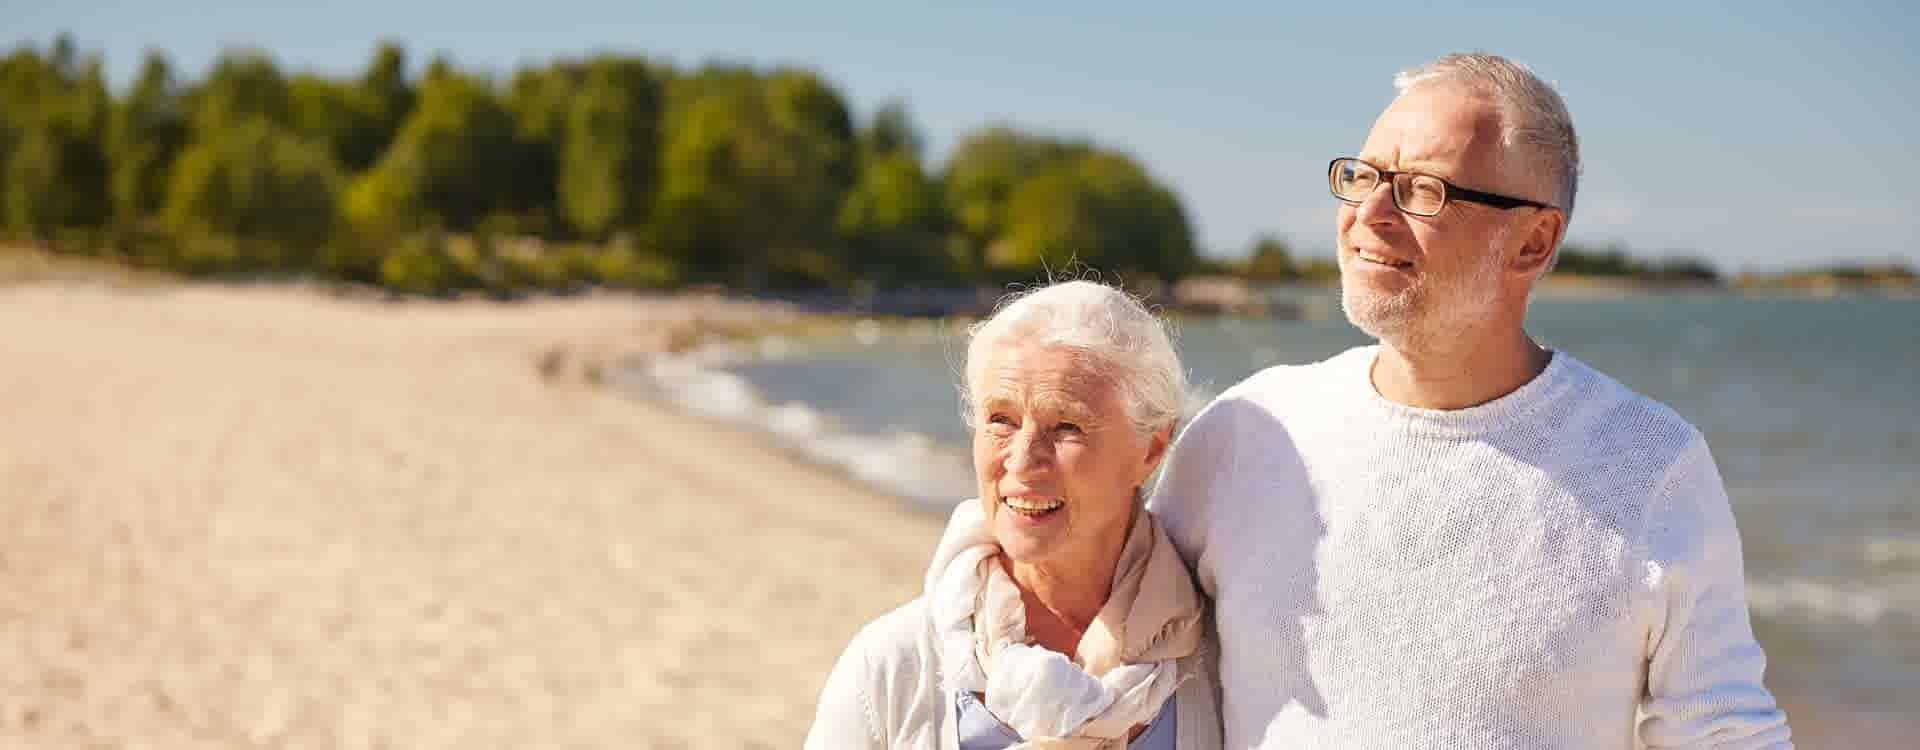 Tips for senior parents visiting the USA